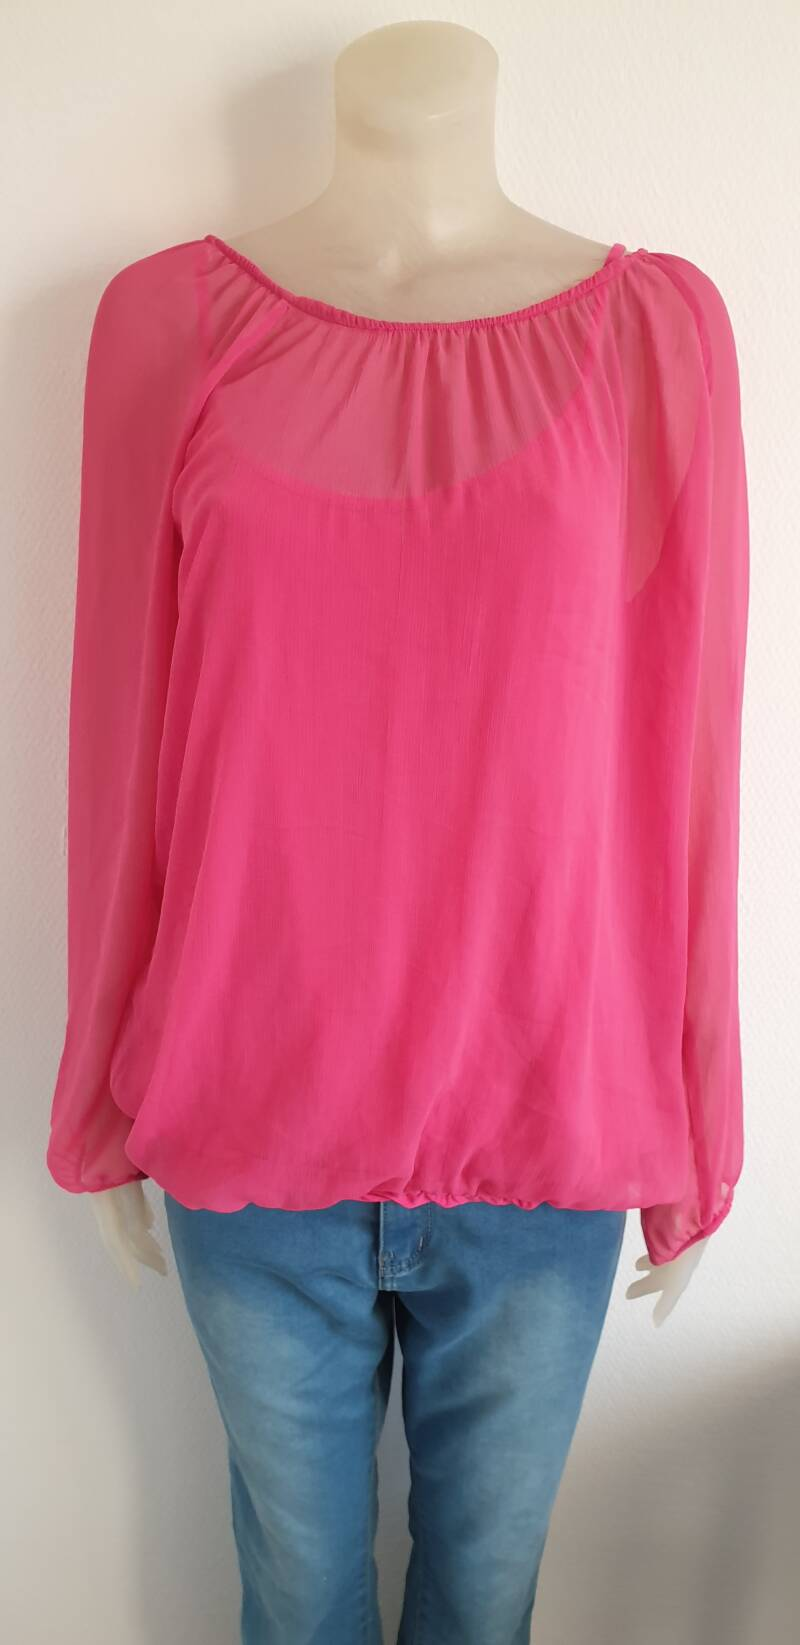 Fuchsia rose dubbellaags top -maat 44